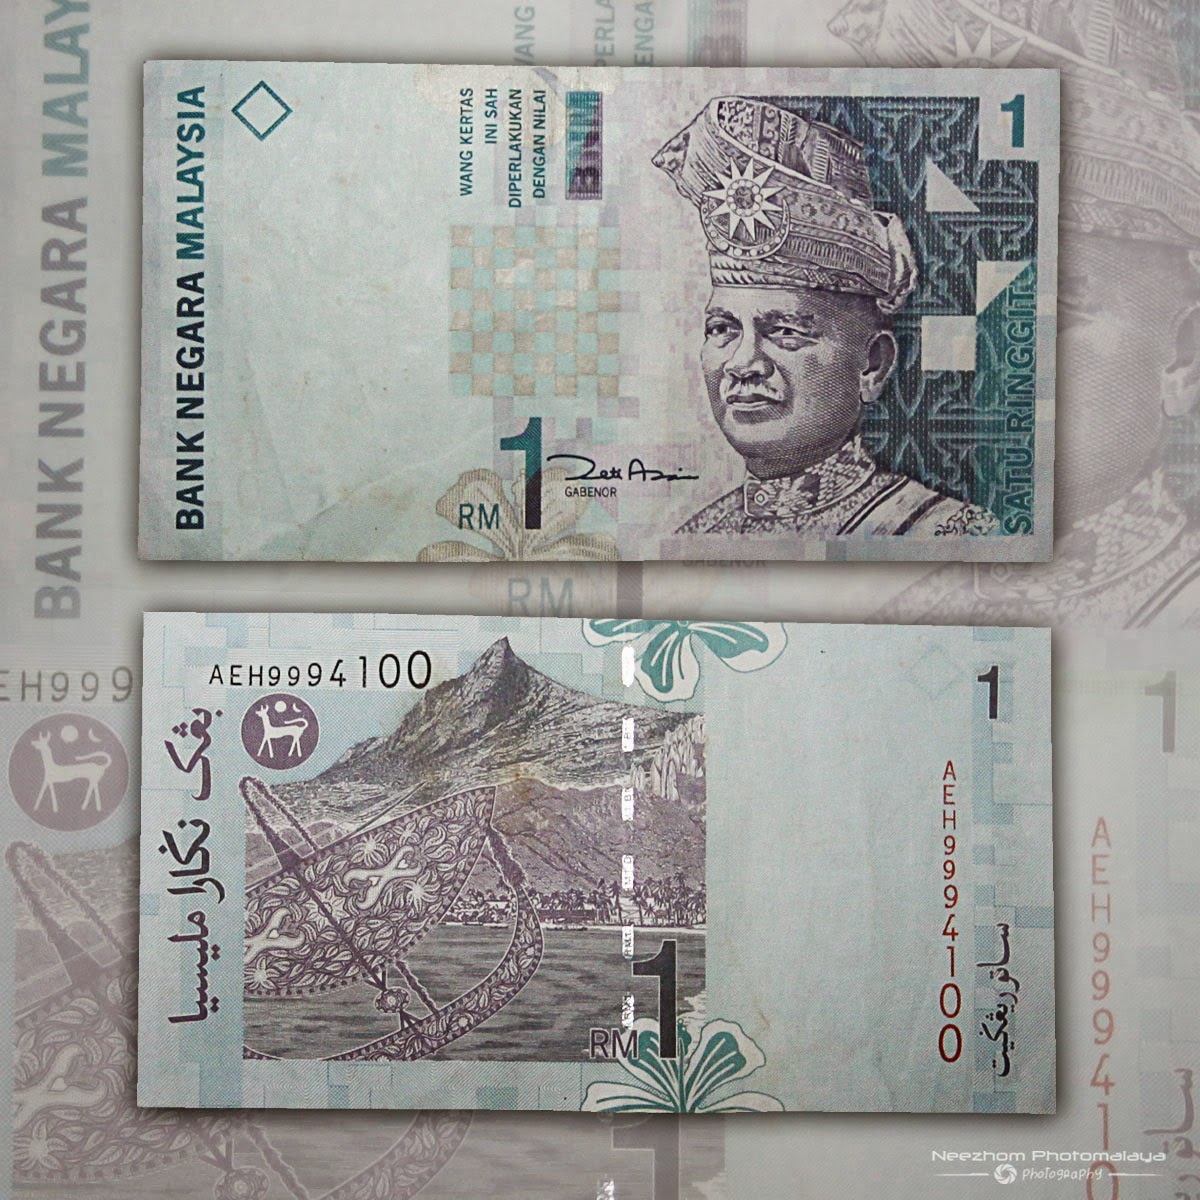 Malaysia 1 Ringgit 3rd series banknote